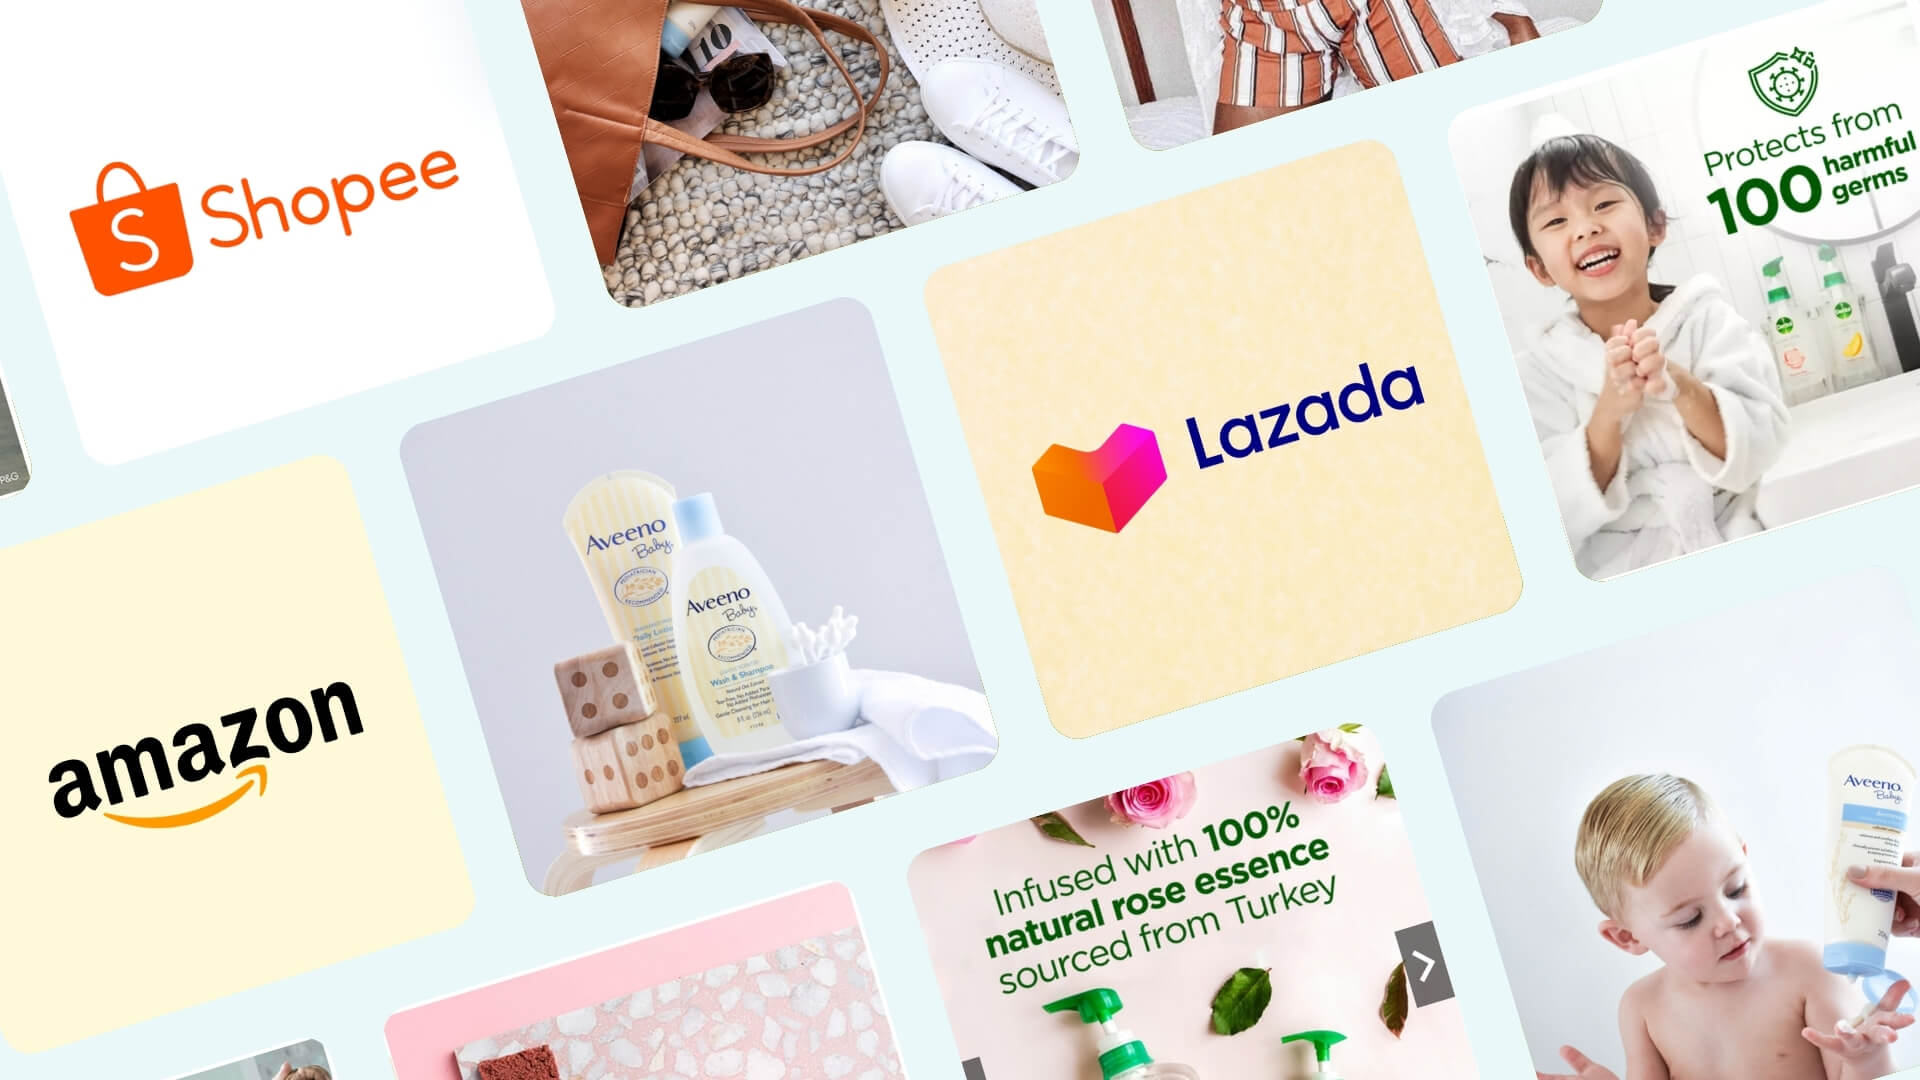 A Comprehensive Guide to Ecommerce Imagery: What Do You Need For Shopee, Amazon, and Lazada